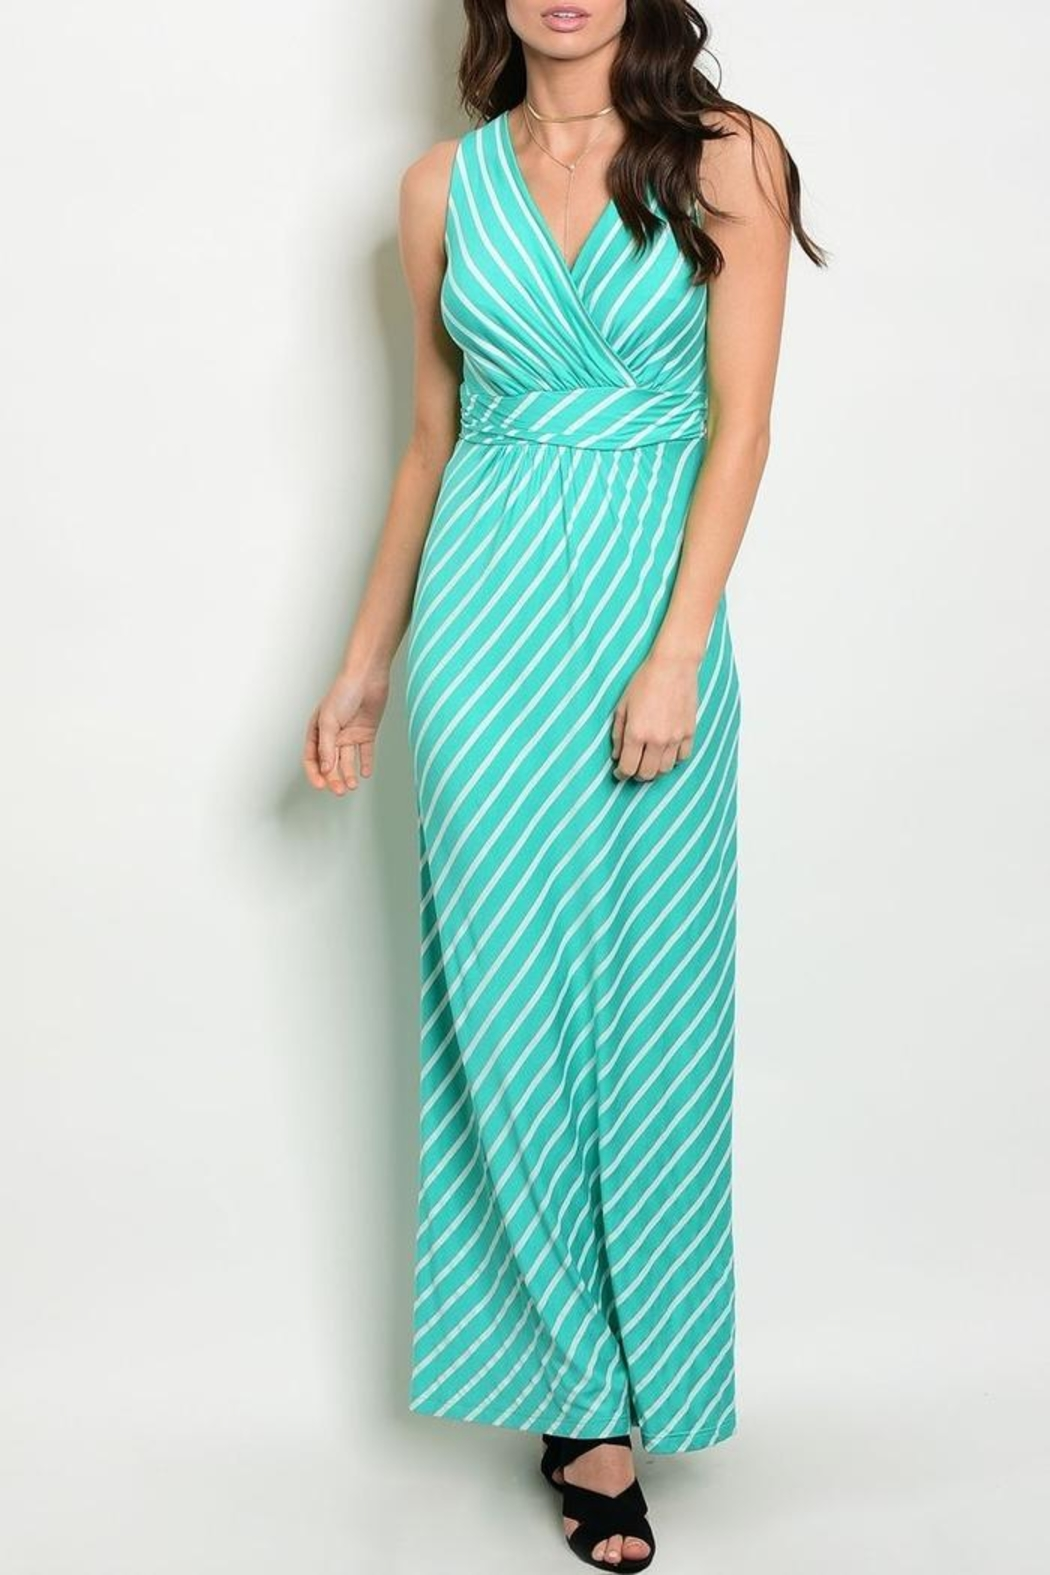 2bc37ca56a Gilli Mint Maxi Dress from Kansas by twill tradE — Shoptiques